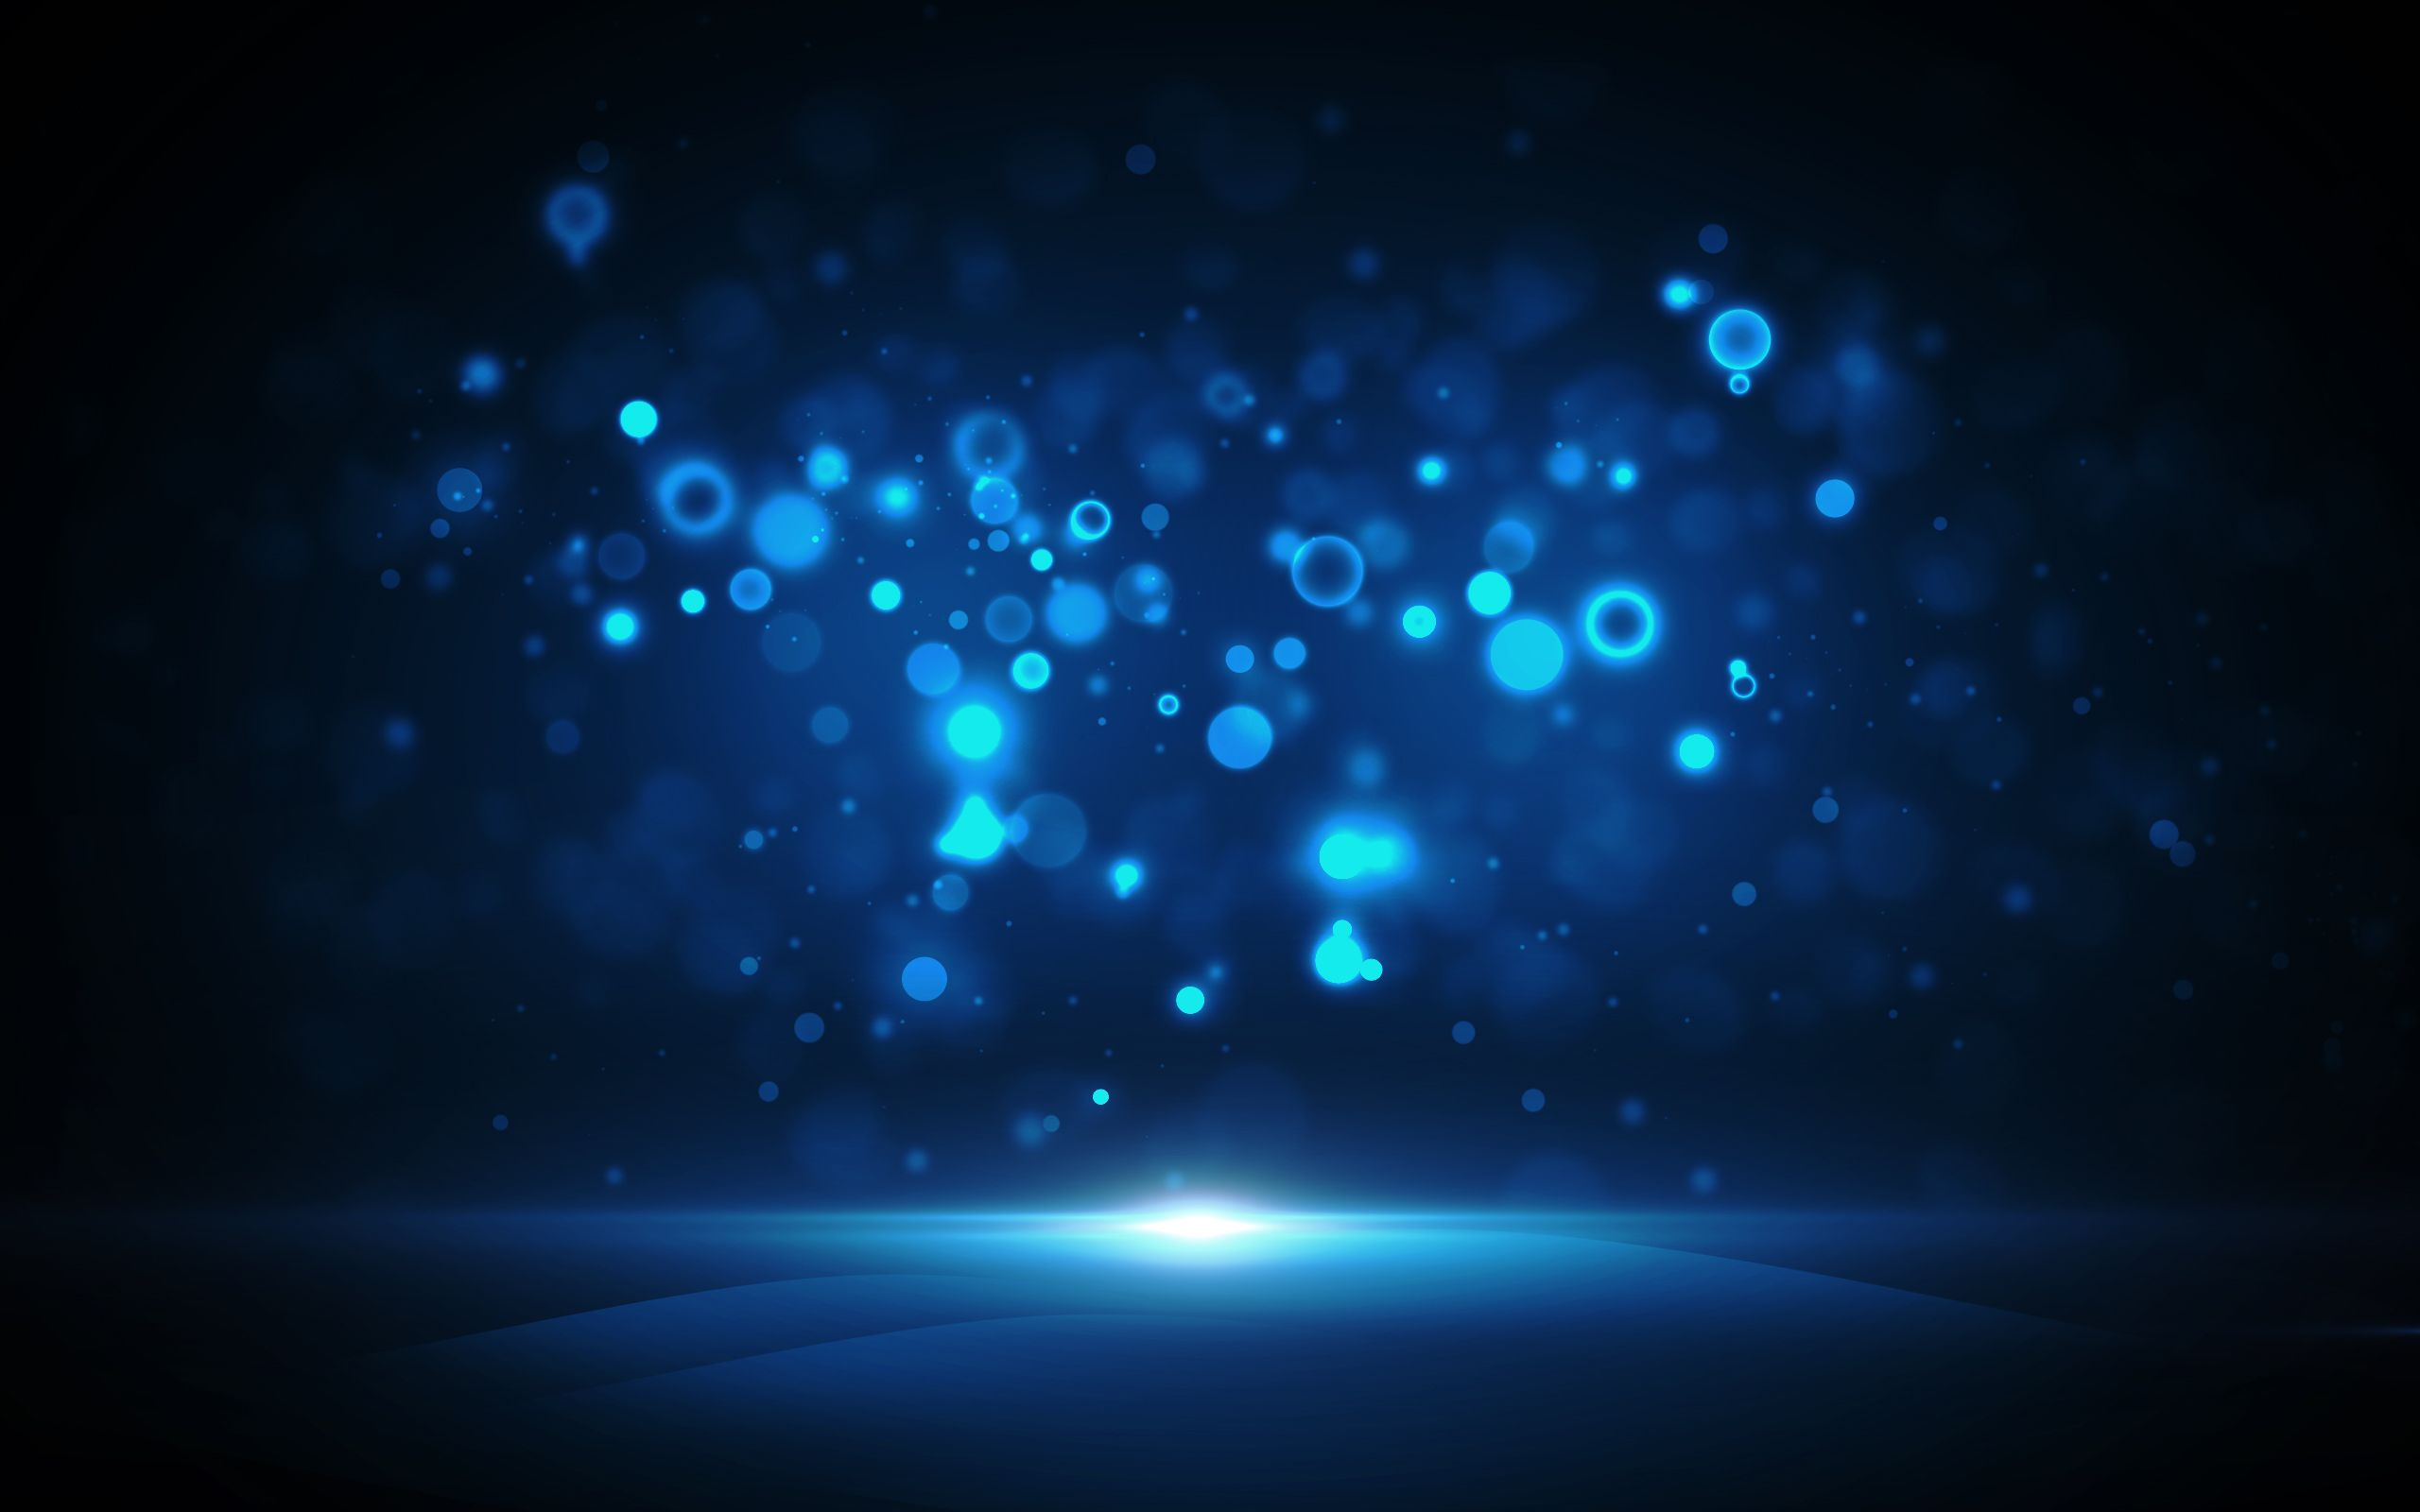 Circles Blue Dark Bokeh Blurred Abstract Backgrounds Colorful